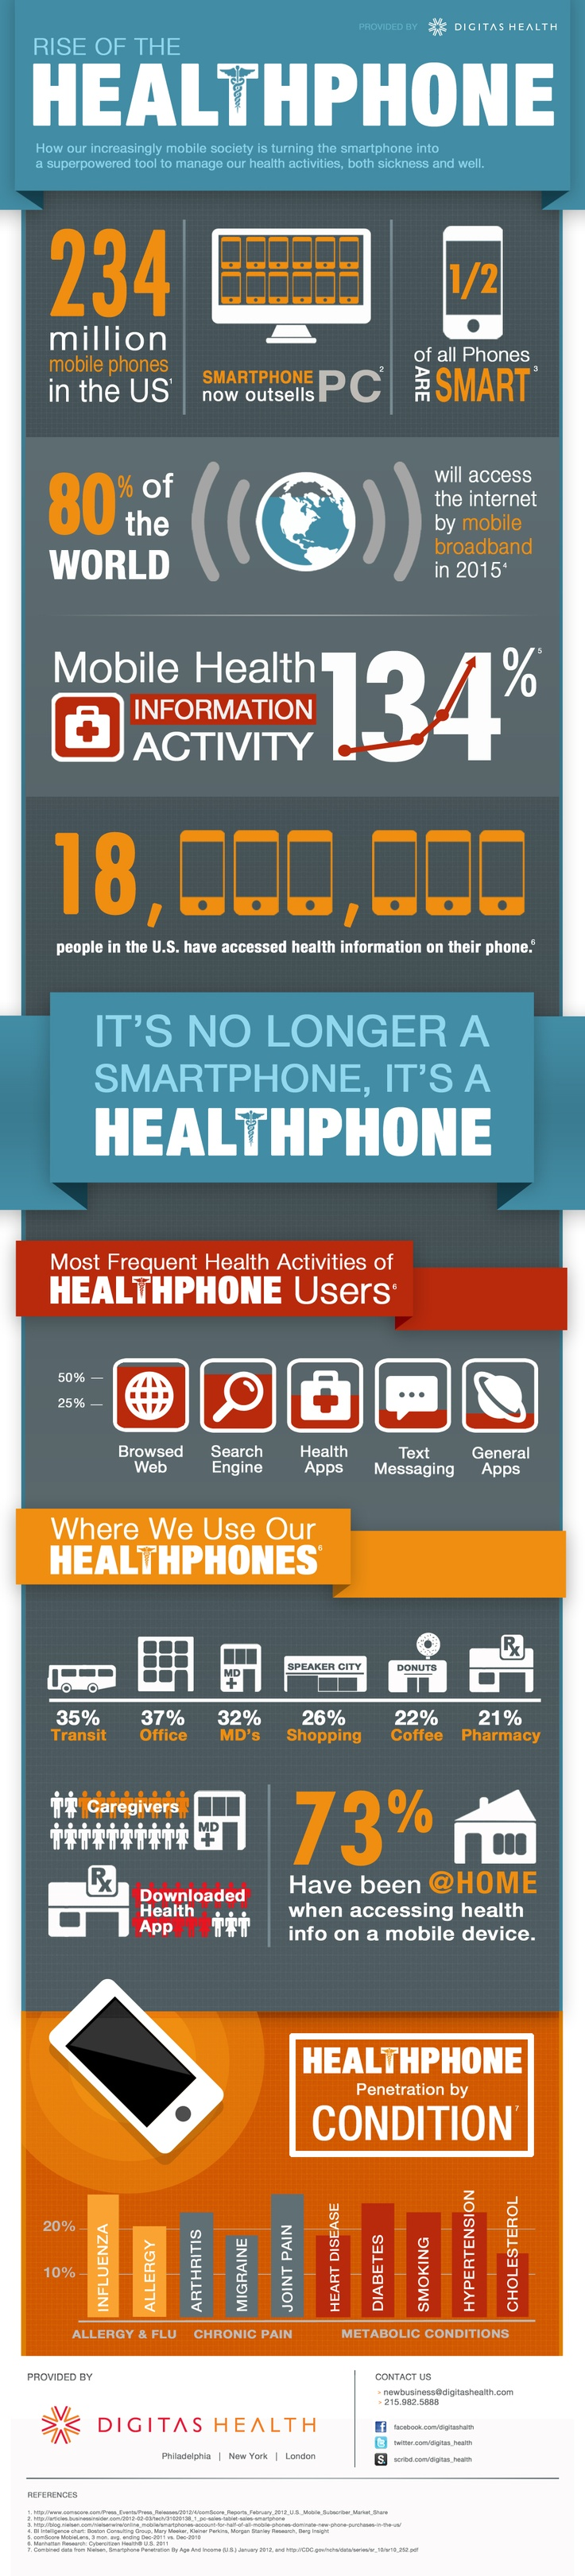 from Smartphone to Healthphone